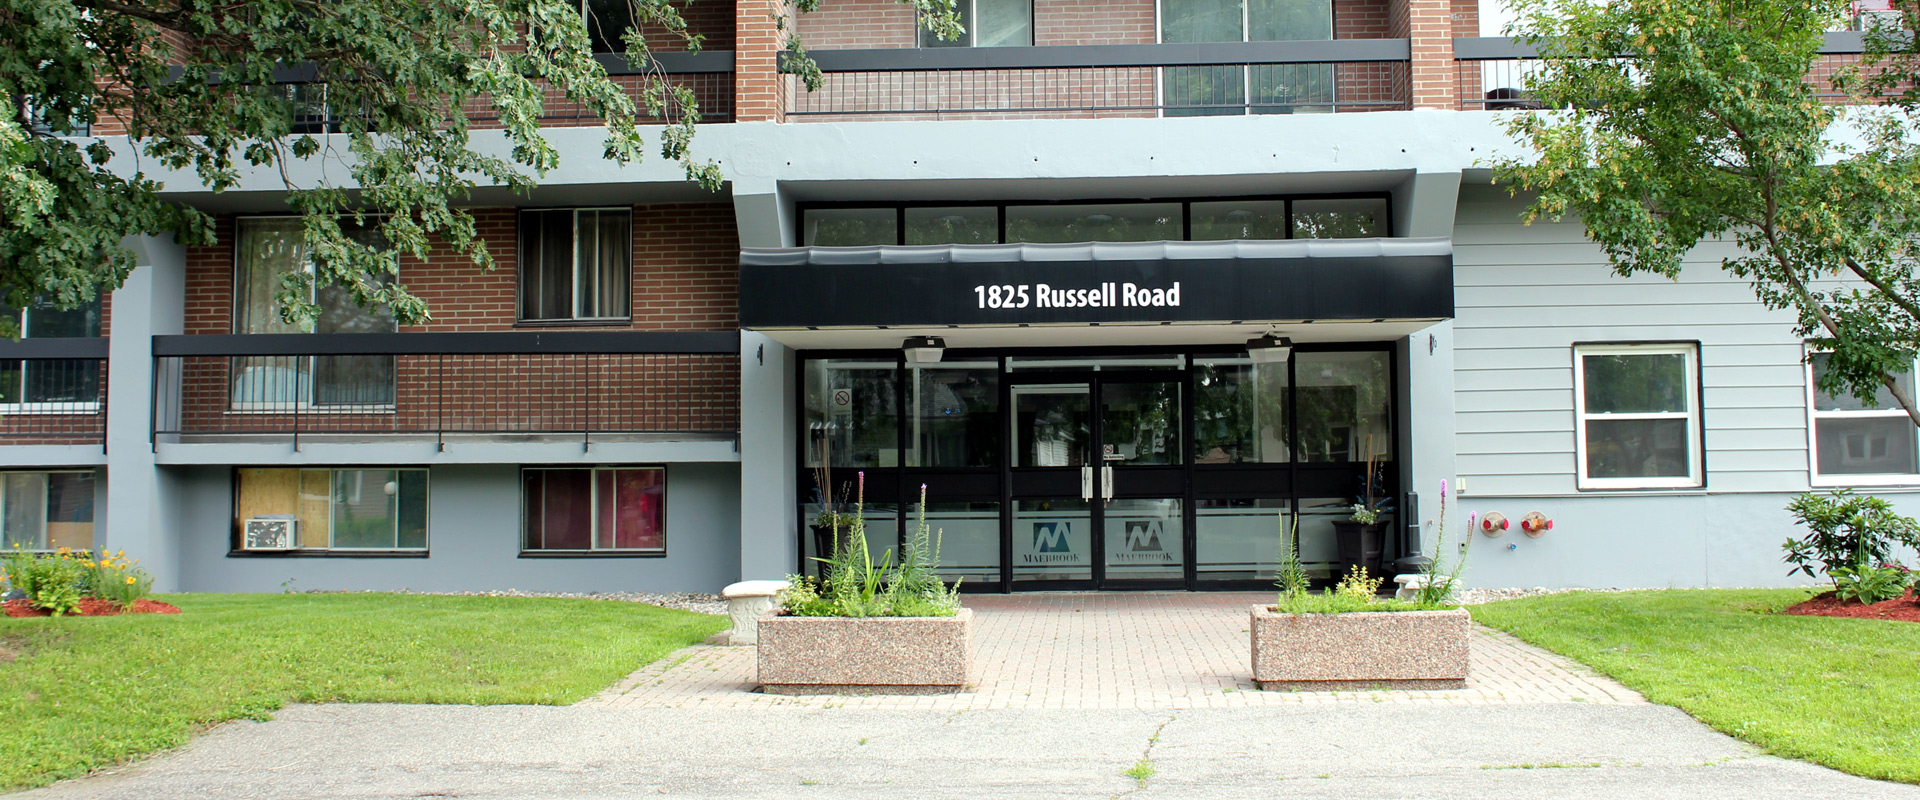 1825 Russell Road Building in Ottawa Canada